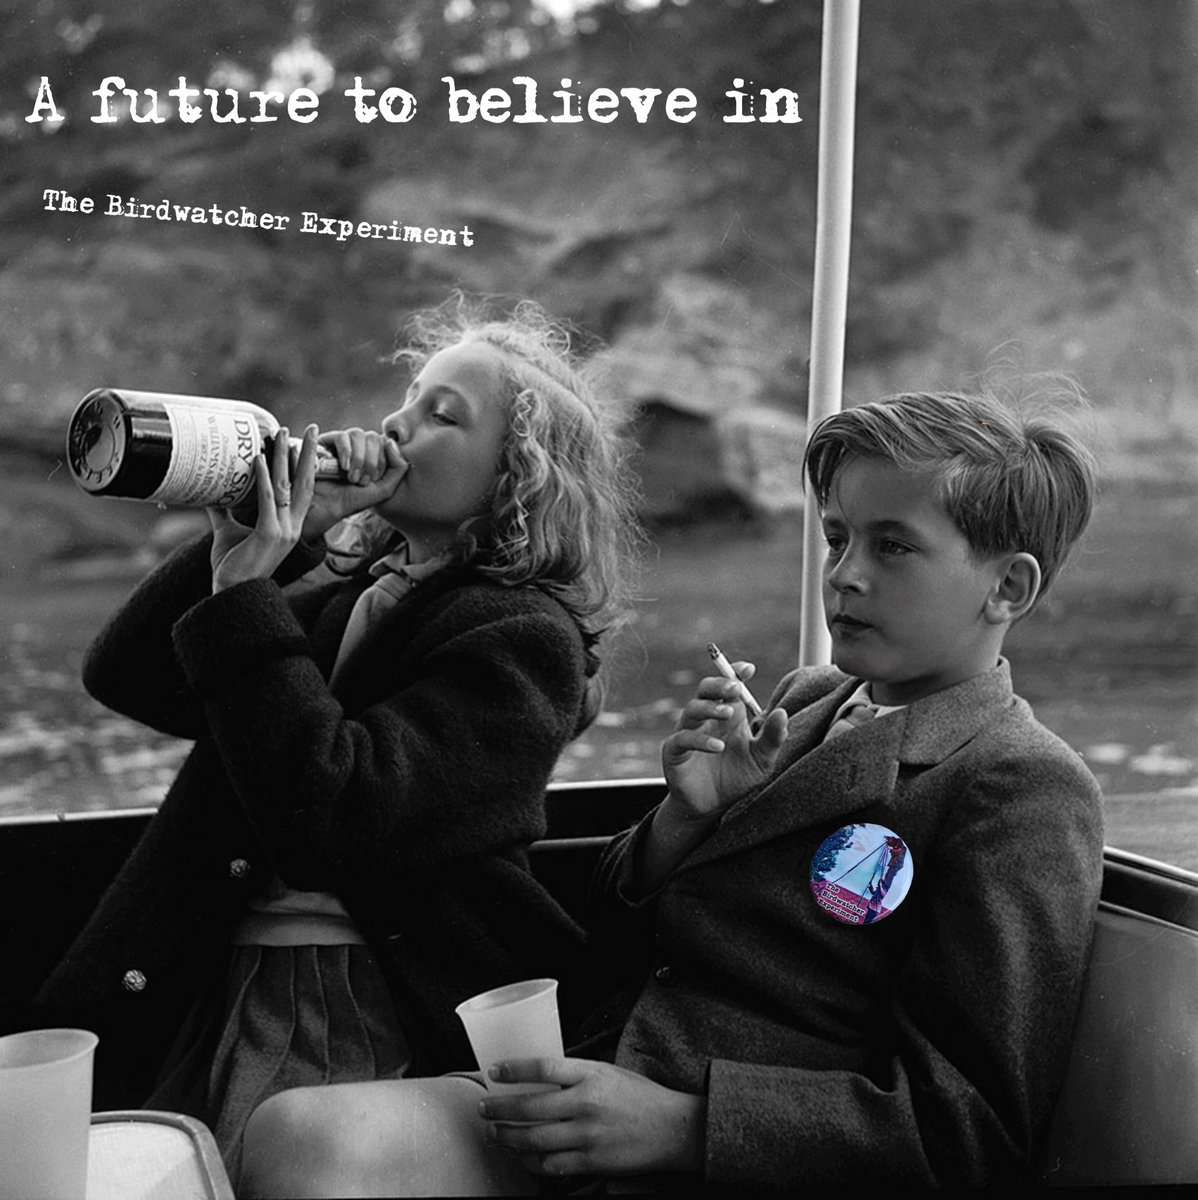 A Future To Believe In by The Birdwatcher Experiment